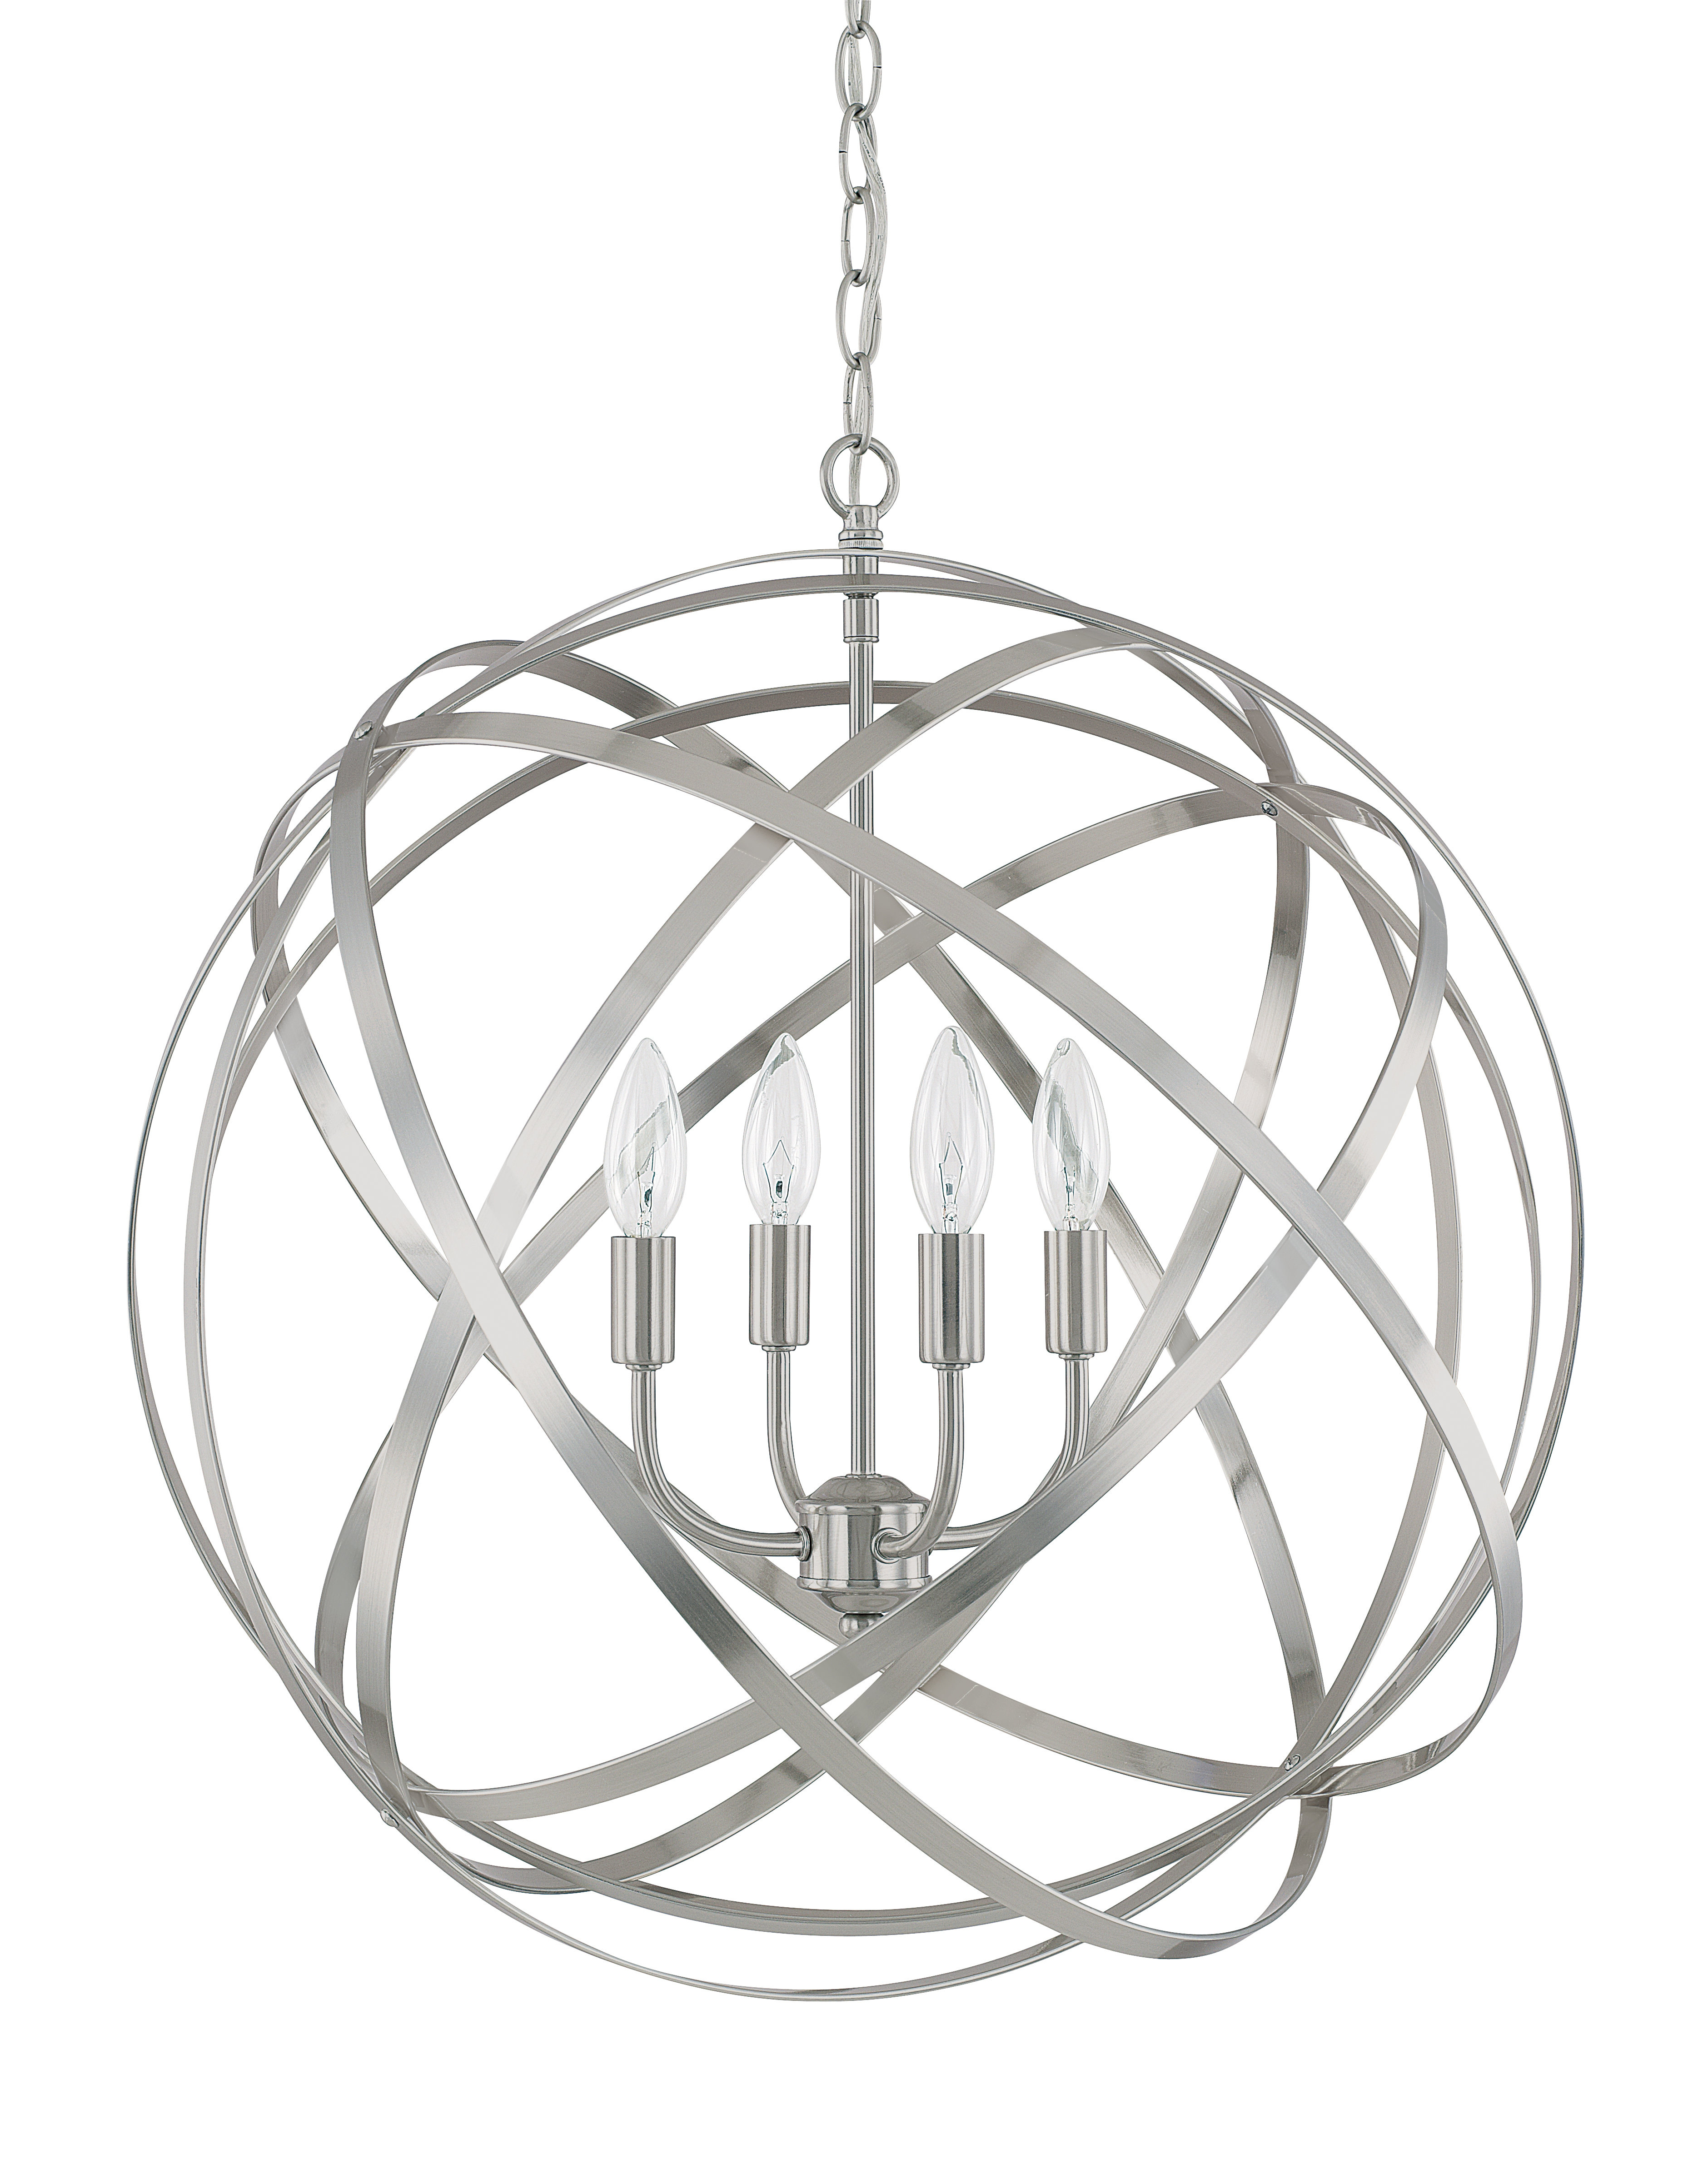 Most Popular Kierra 4 Light Unique / Statement Chandelier With Regard To Hendry 4 Light Globe Chandeliers (View 11 of 20)